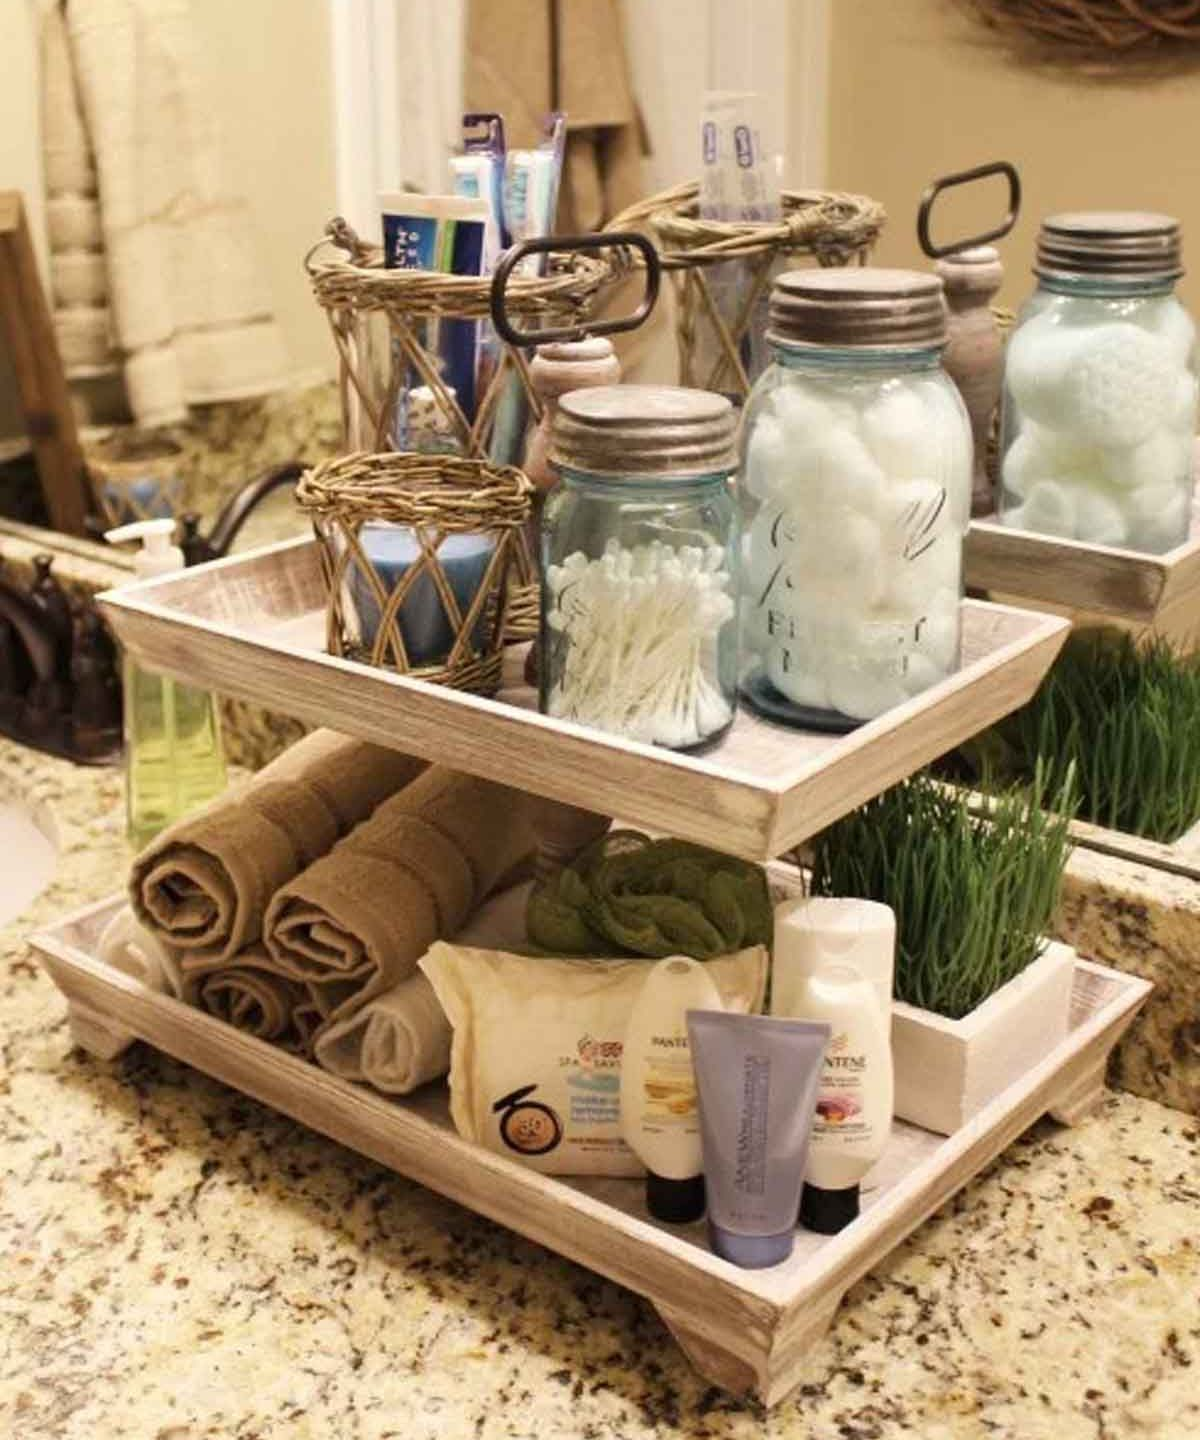 Storage tray on bathroom counter